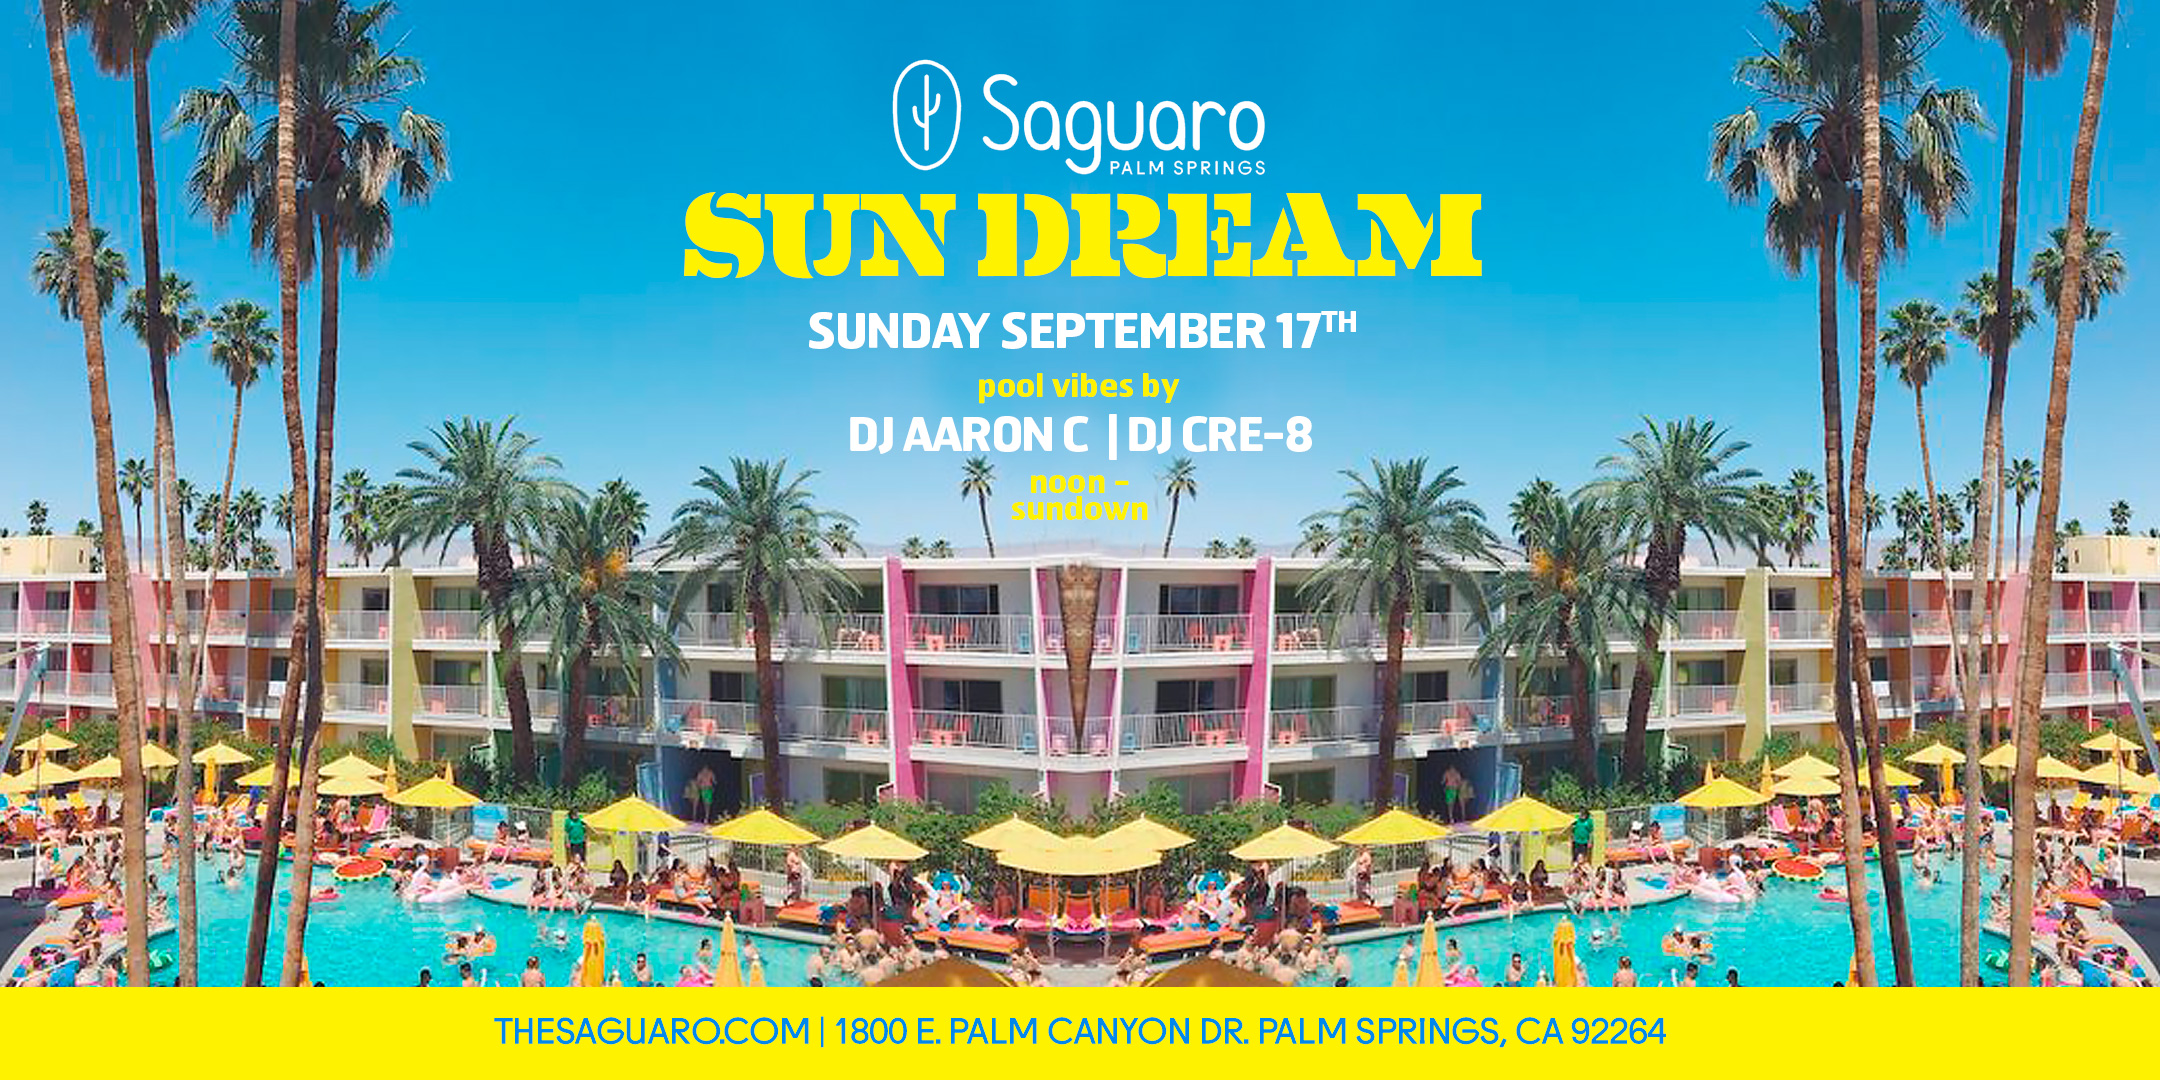 Sun Dream at Saguaro Palm Springs with Aaron C